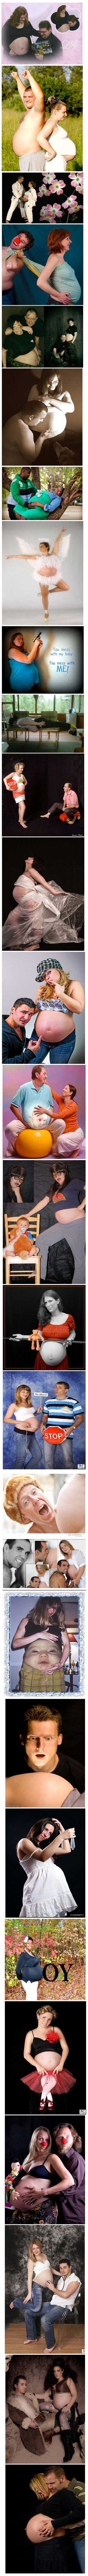 Totally awkward pregnancy photos